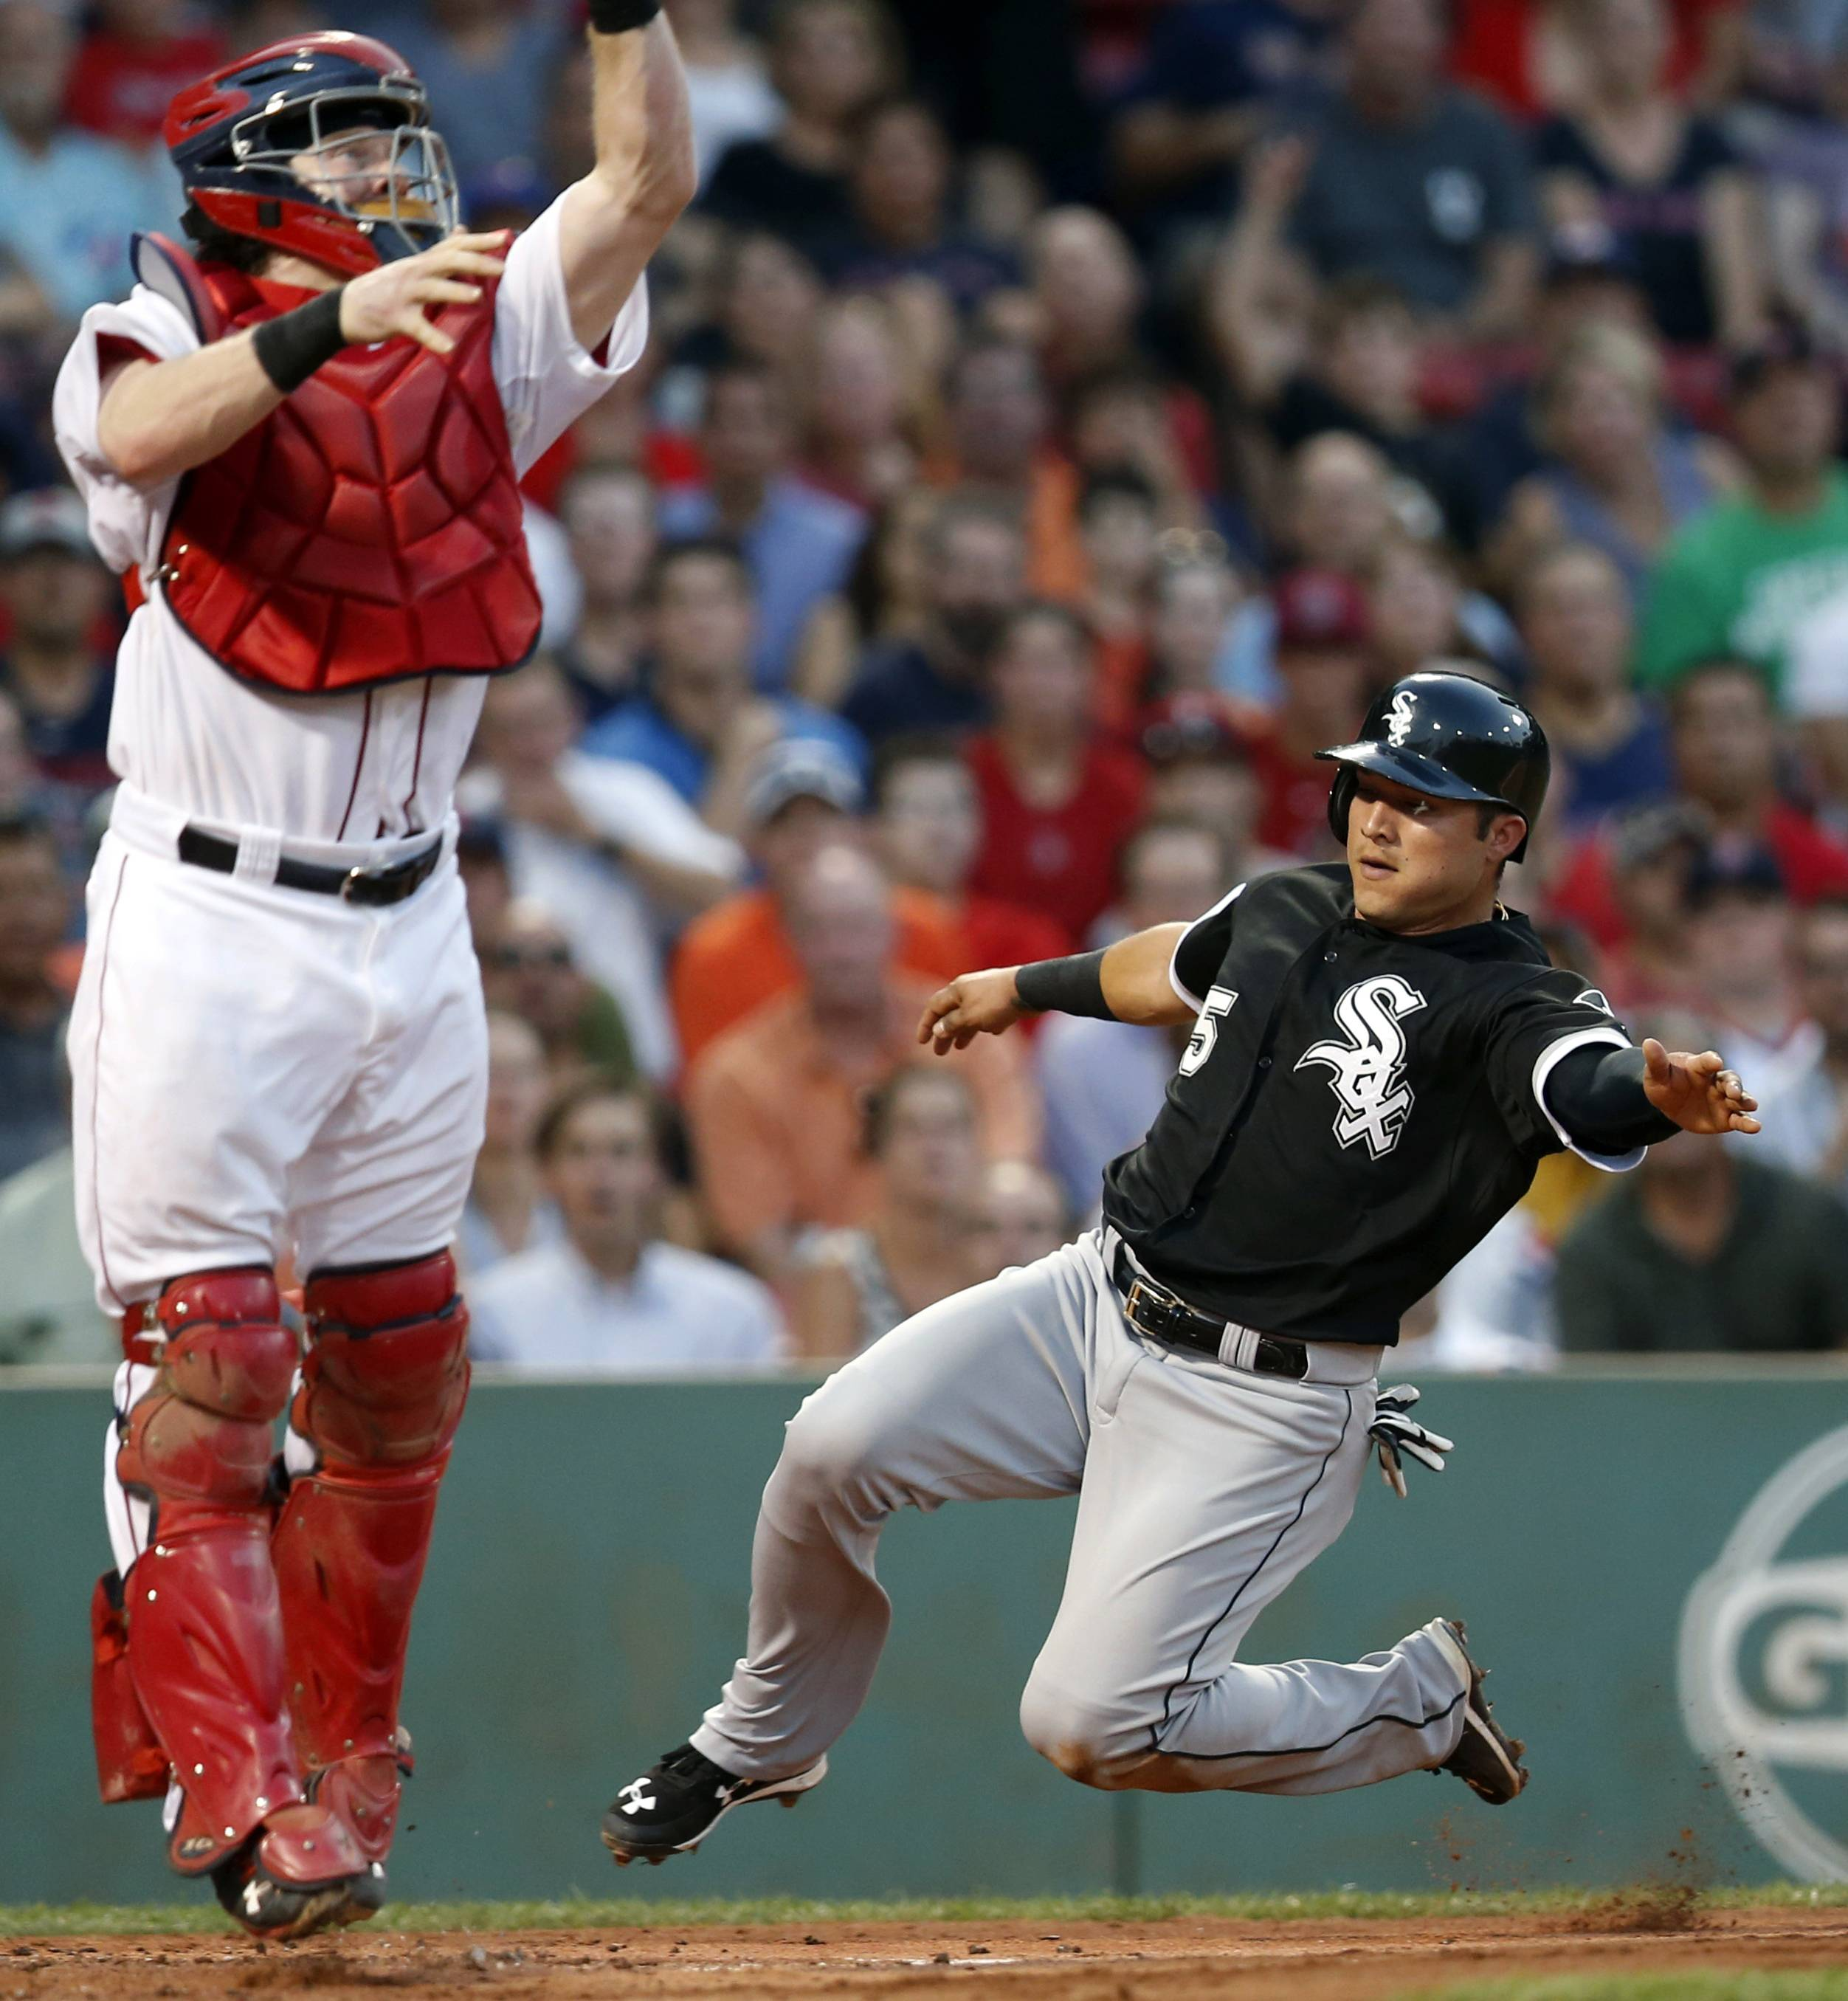 Chicago White Sox's Carlos Sanchez (5) scores on a single by Adam Eaton as Boston Red Sox's Ryan Hanigan jumps for the high throw during the second inning of a baseball game in Boston, Wednesday, July 29, 2015.